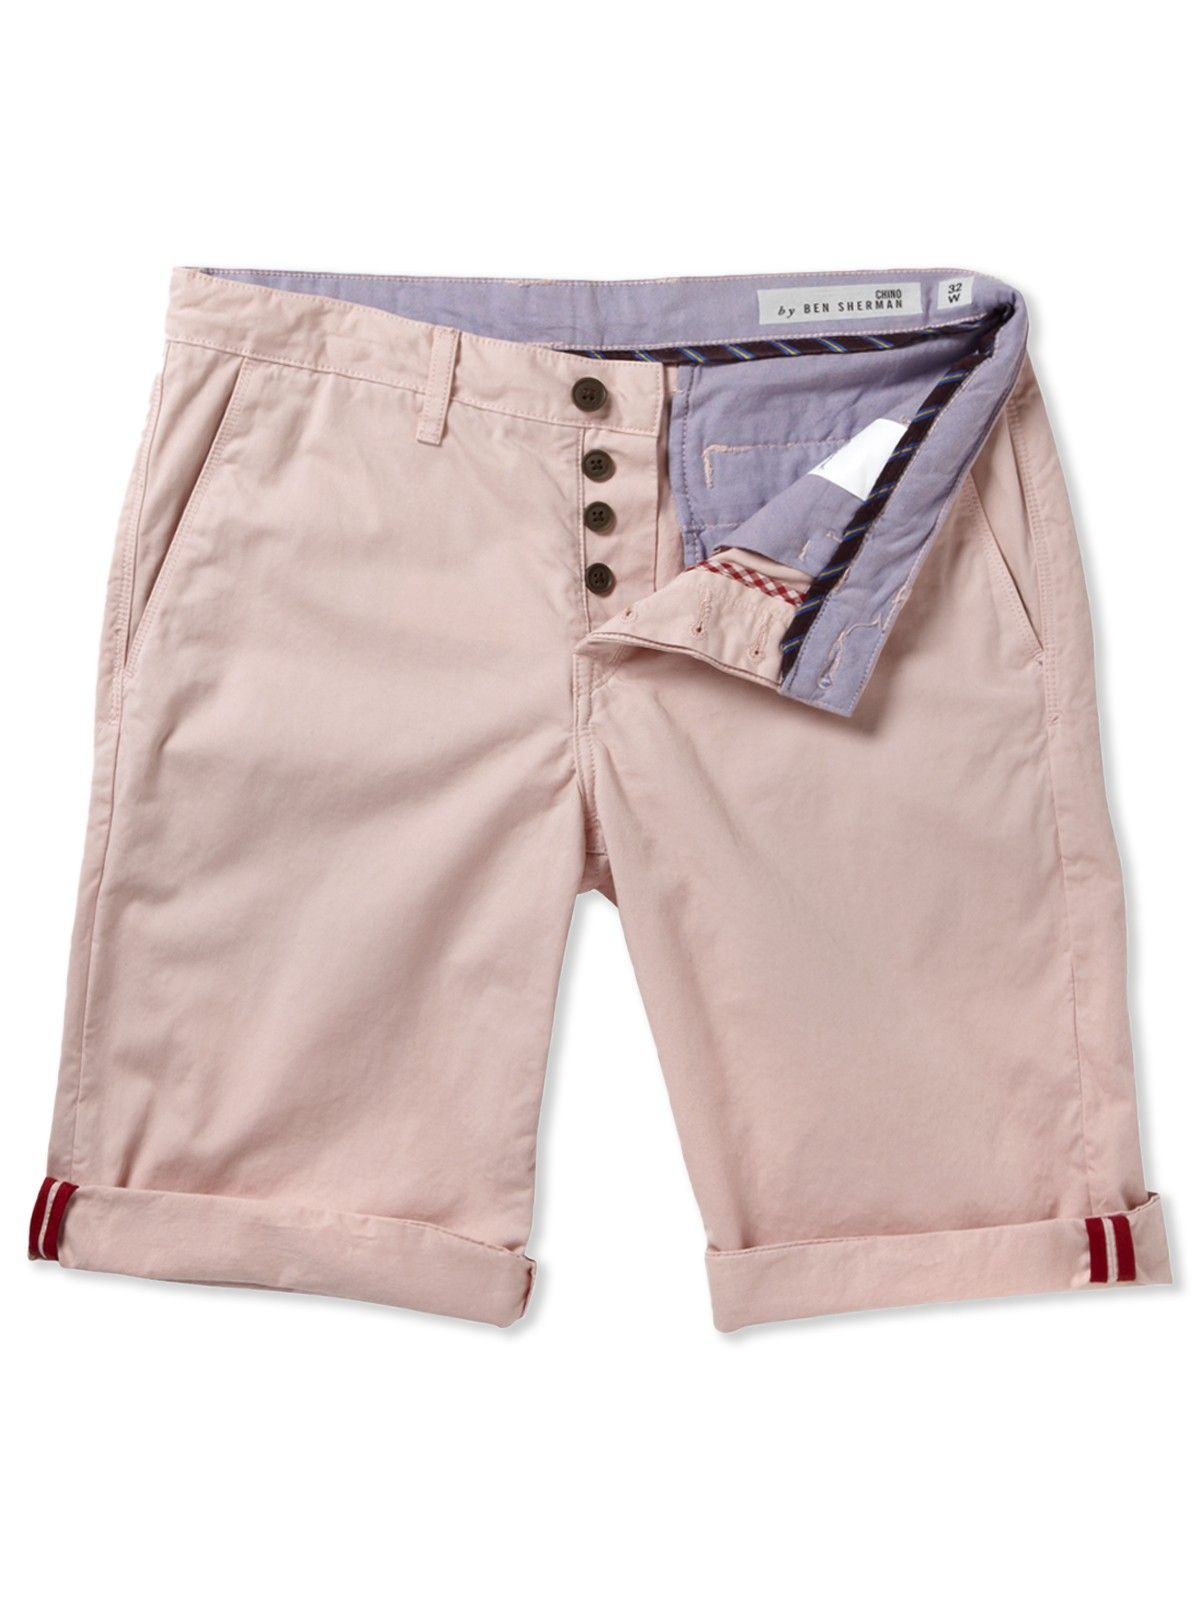 ec1 chino shorts. by ben sherman.